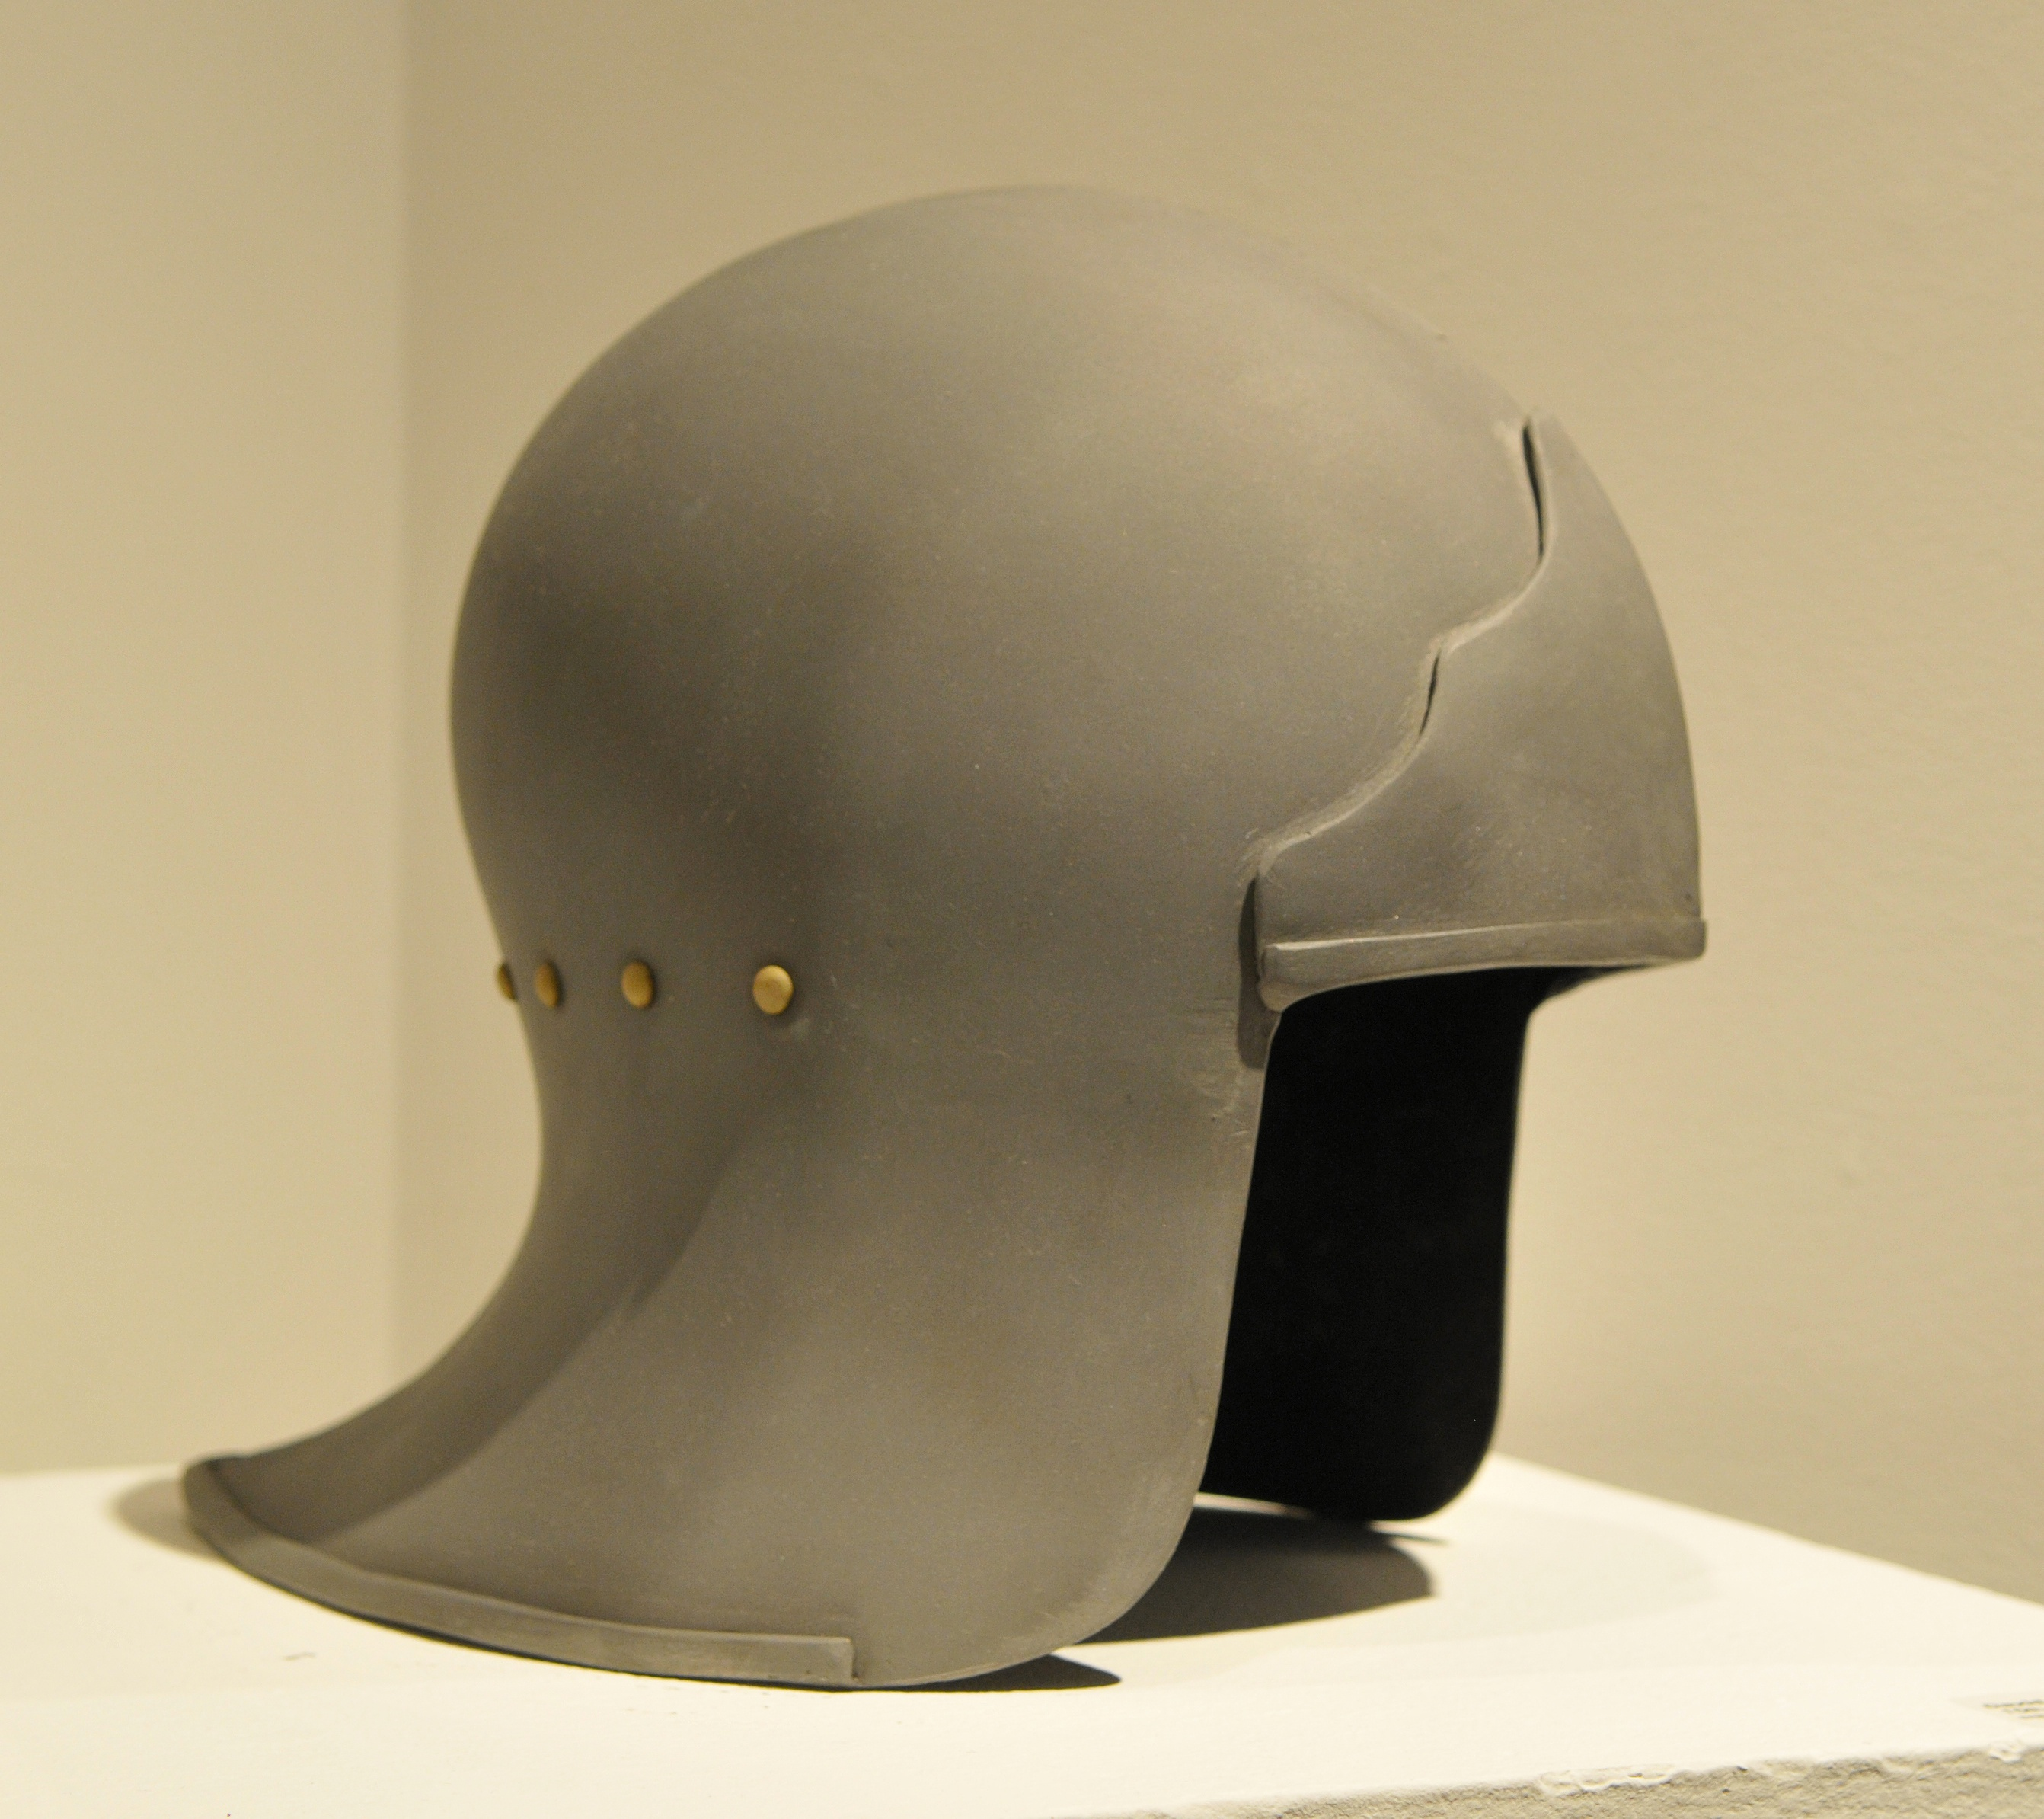 Why didn't the British keep the Brodie helmet design with their